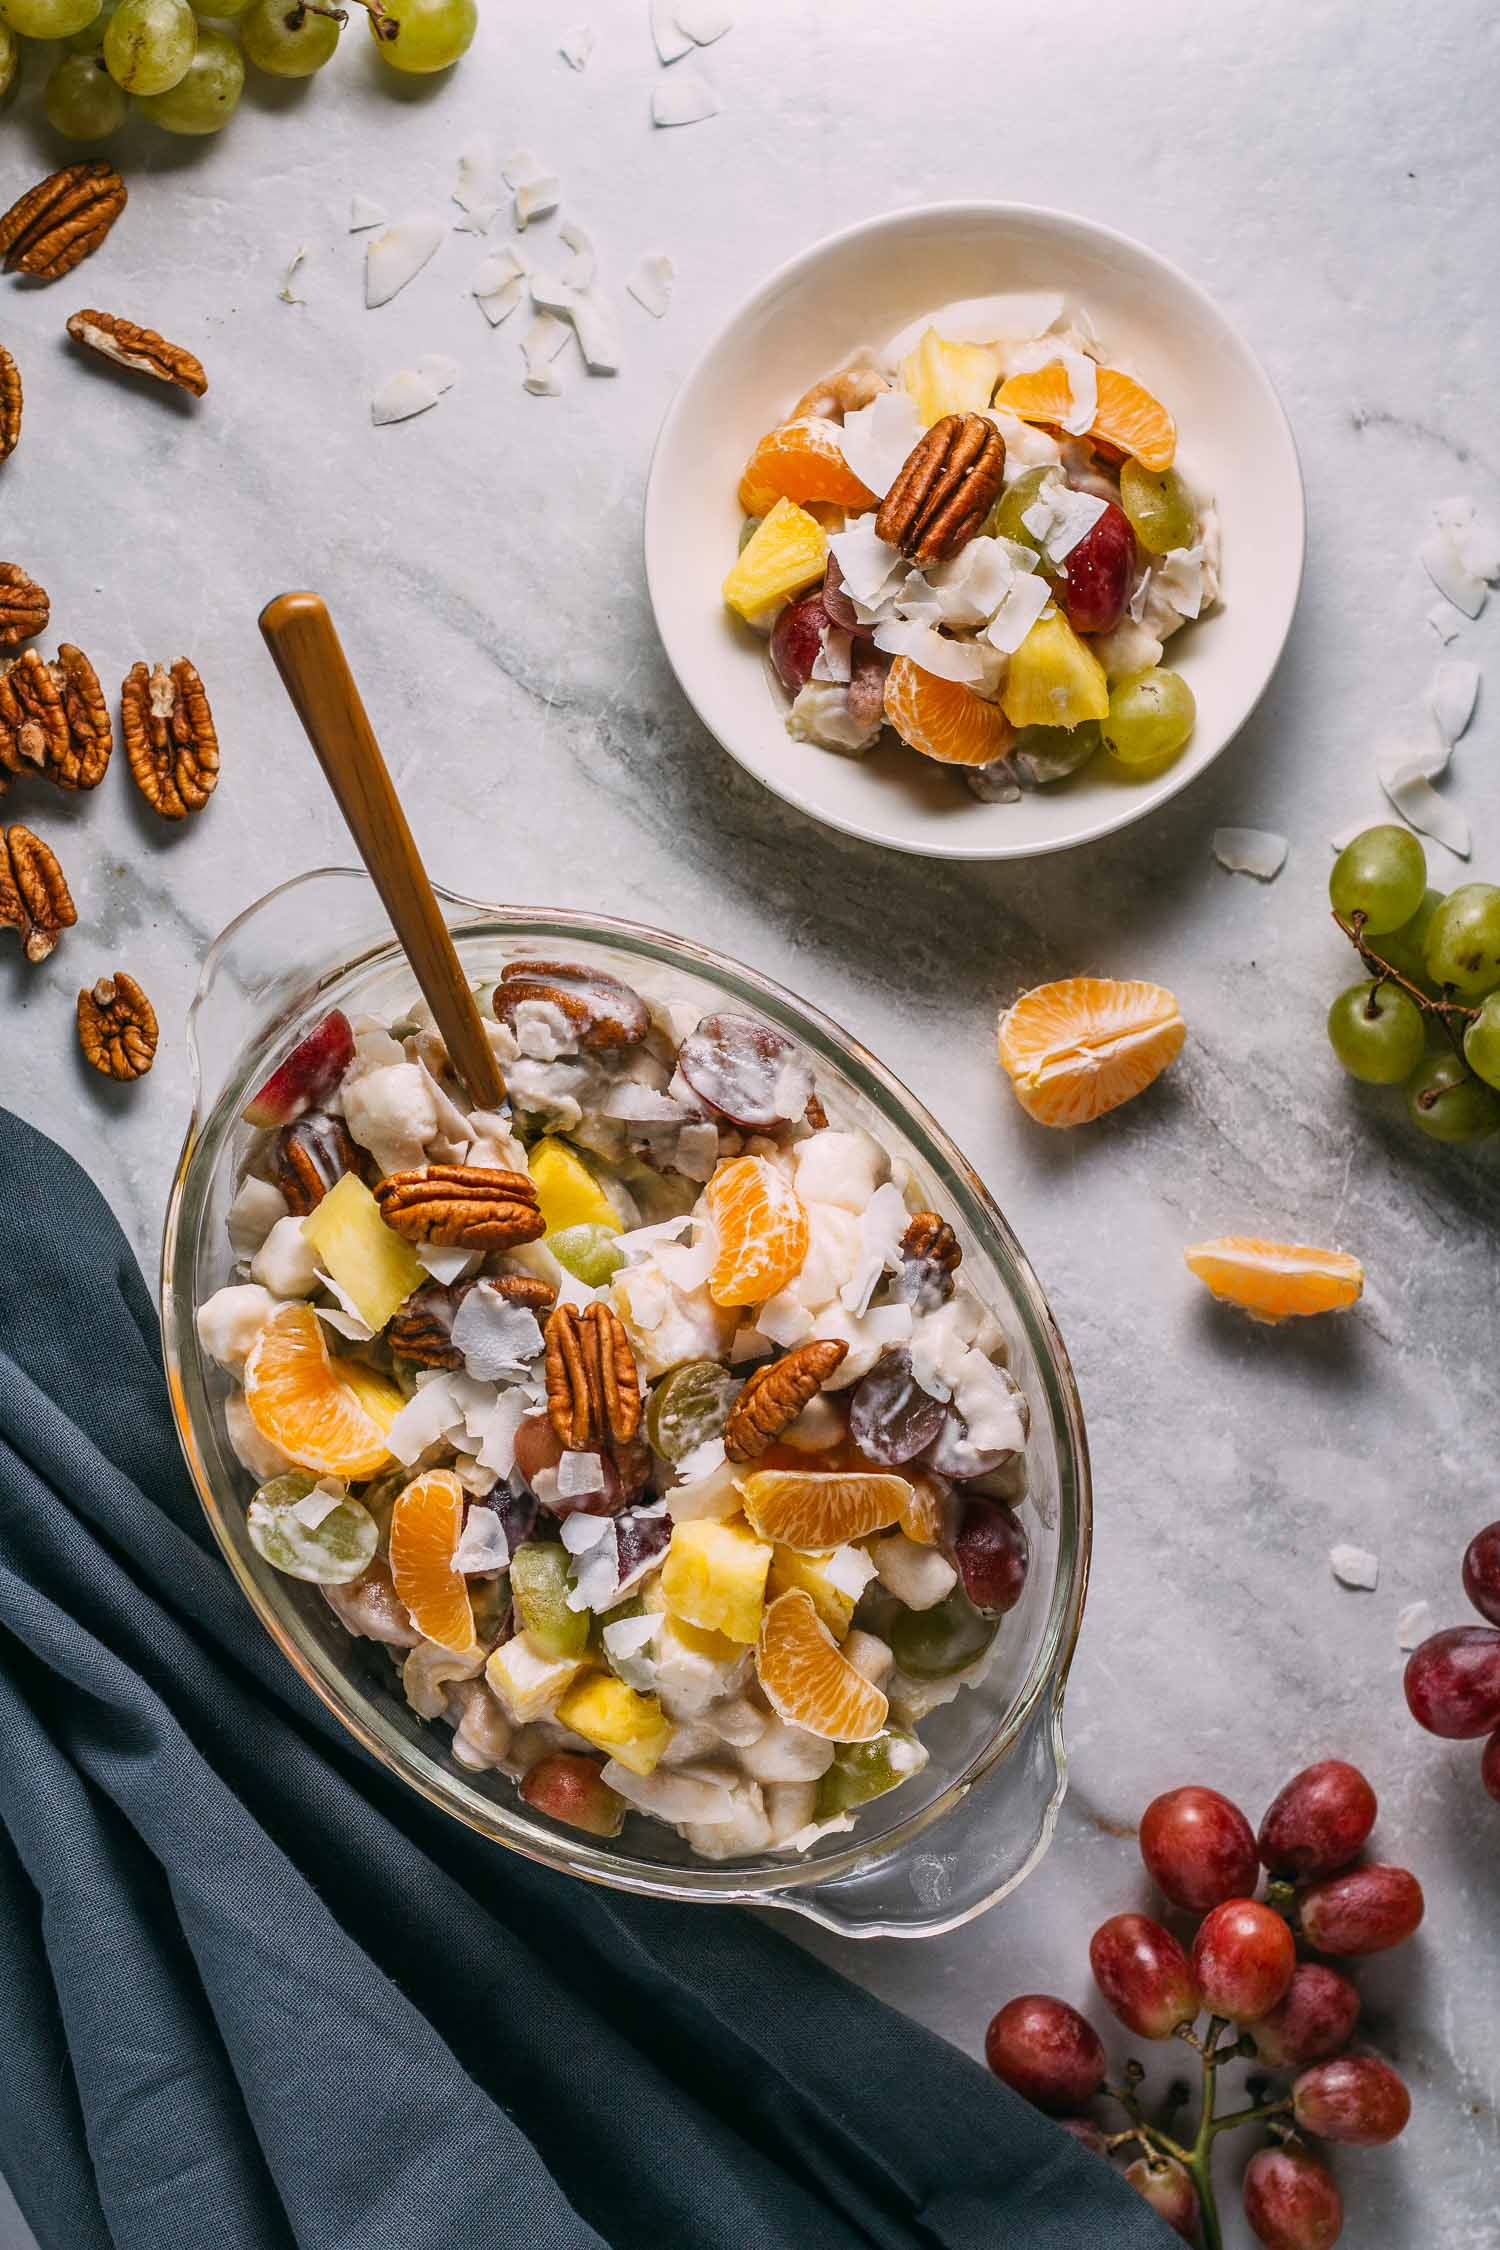 Coconut Ambrosia Fruit Salad #coconut #ambrosia #fruit #salad #dessert #vegan #wfpb #wfpbno #plant-based #vegetarian #Easter #Christmas #Thanksgiving #New Year's #holidays #potluck #throwback #retro #recipe #makeover #make-ahead #gluten-free #dairy-free #refined oil-free #no-oil #recipes #Clementines #pineapple #pecans #cashews #grapes #Dandie's #marshmellows #Kite Hill #dairy-free #yogurt